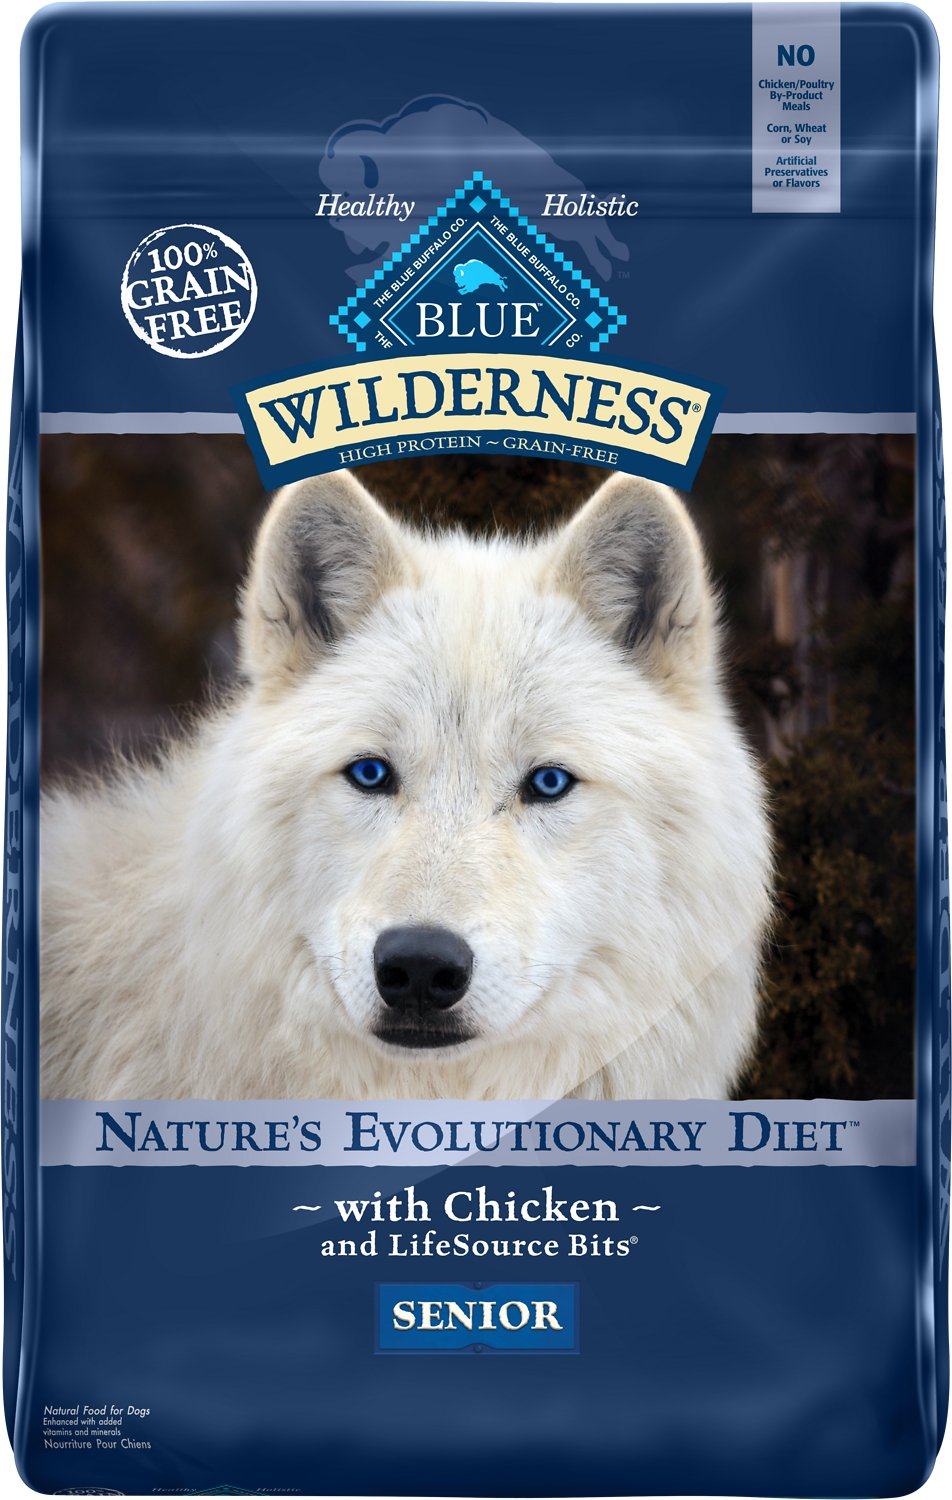 Blue Buffalo Wilderness Senior Chicken Recipe Grain-Free Dry Dog Food Image